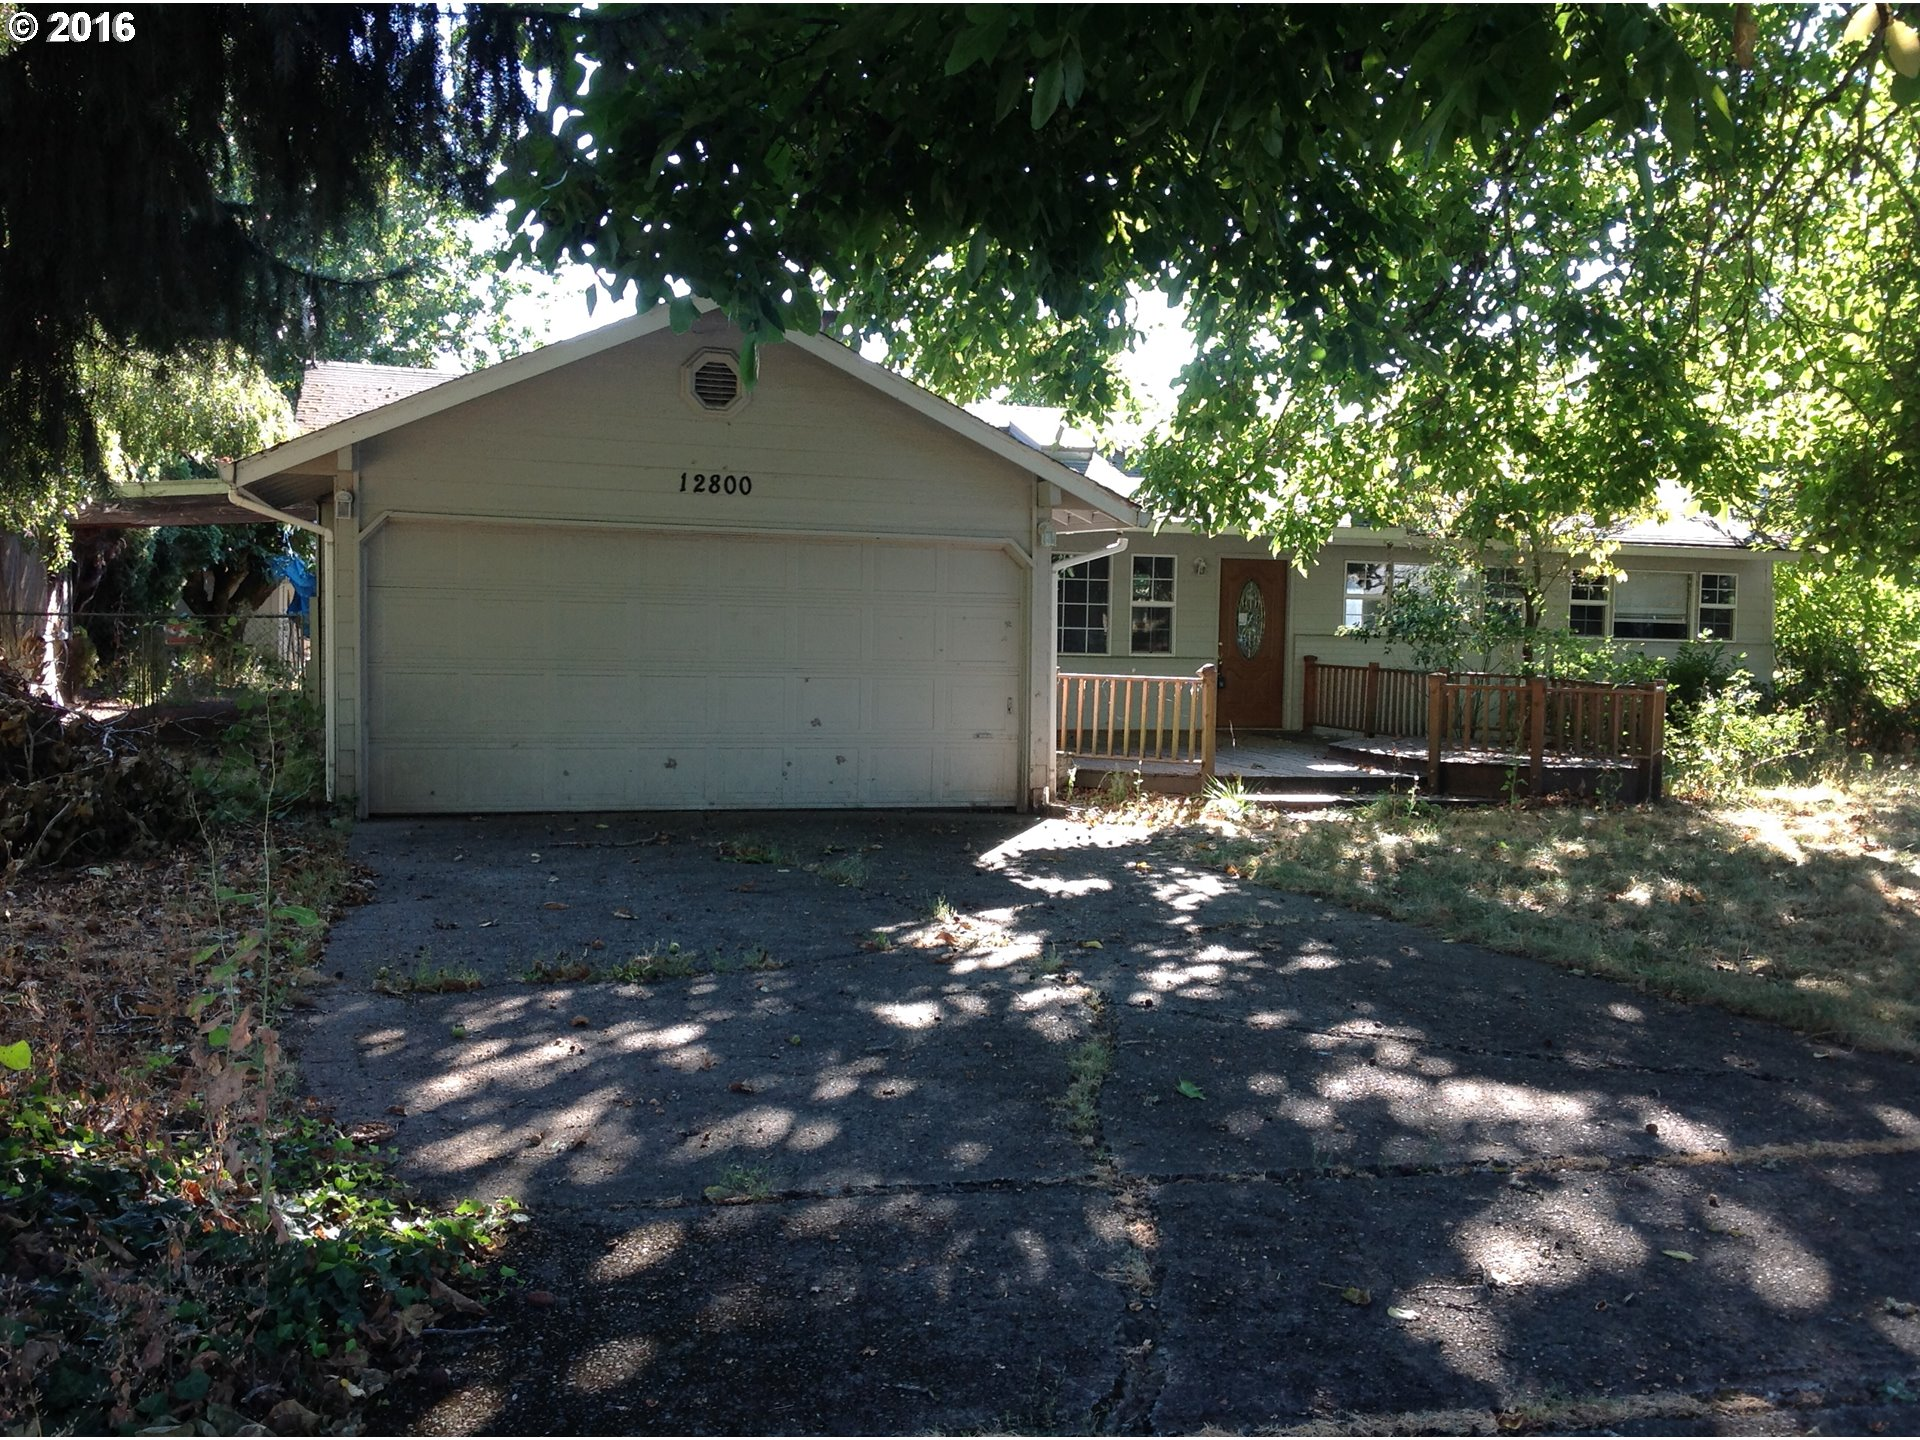 12800 NW 44TH AVE, Vancouver, WA 98685